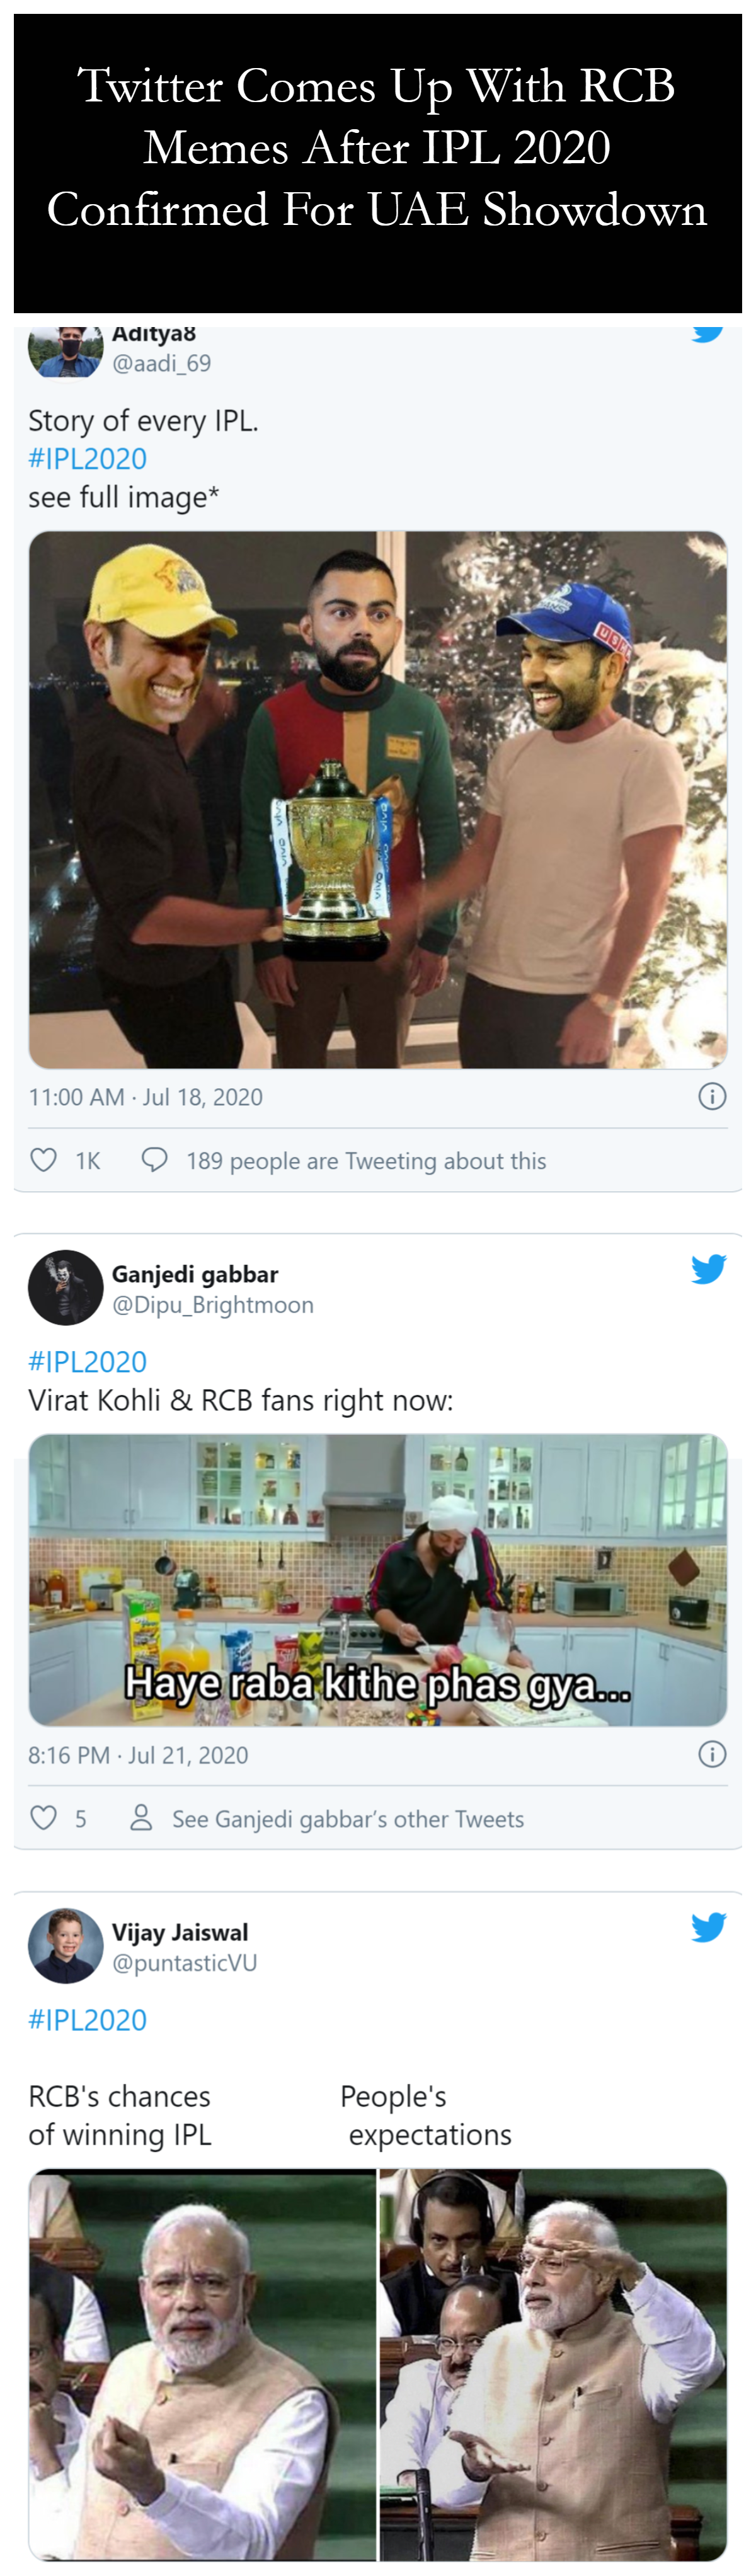 Twitter Comes Up With RCB Memes After IPL 2020 Confirmed